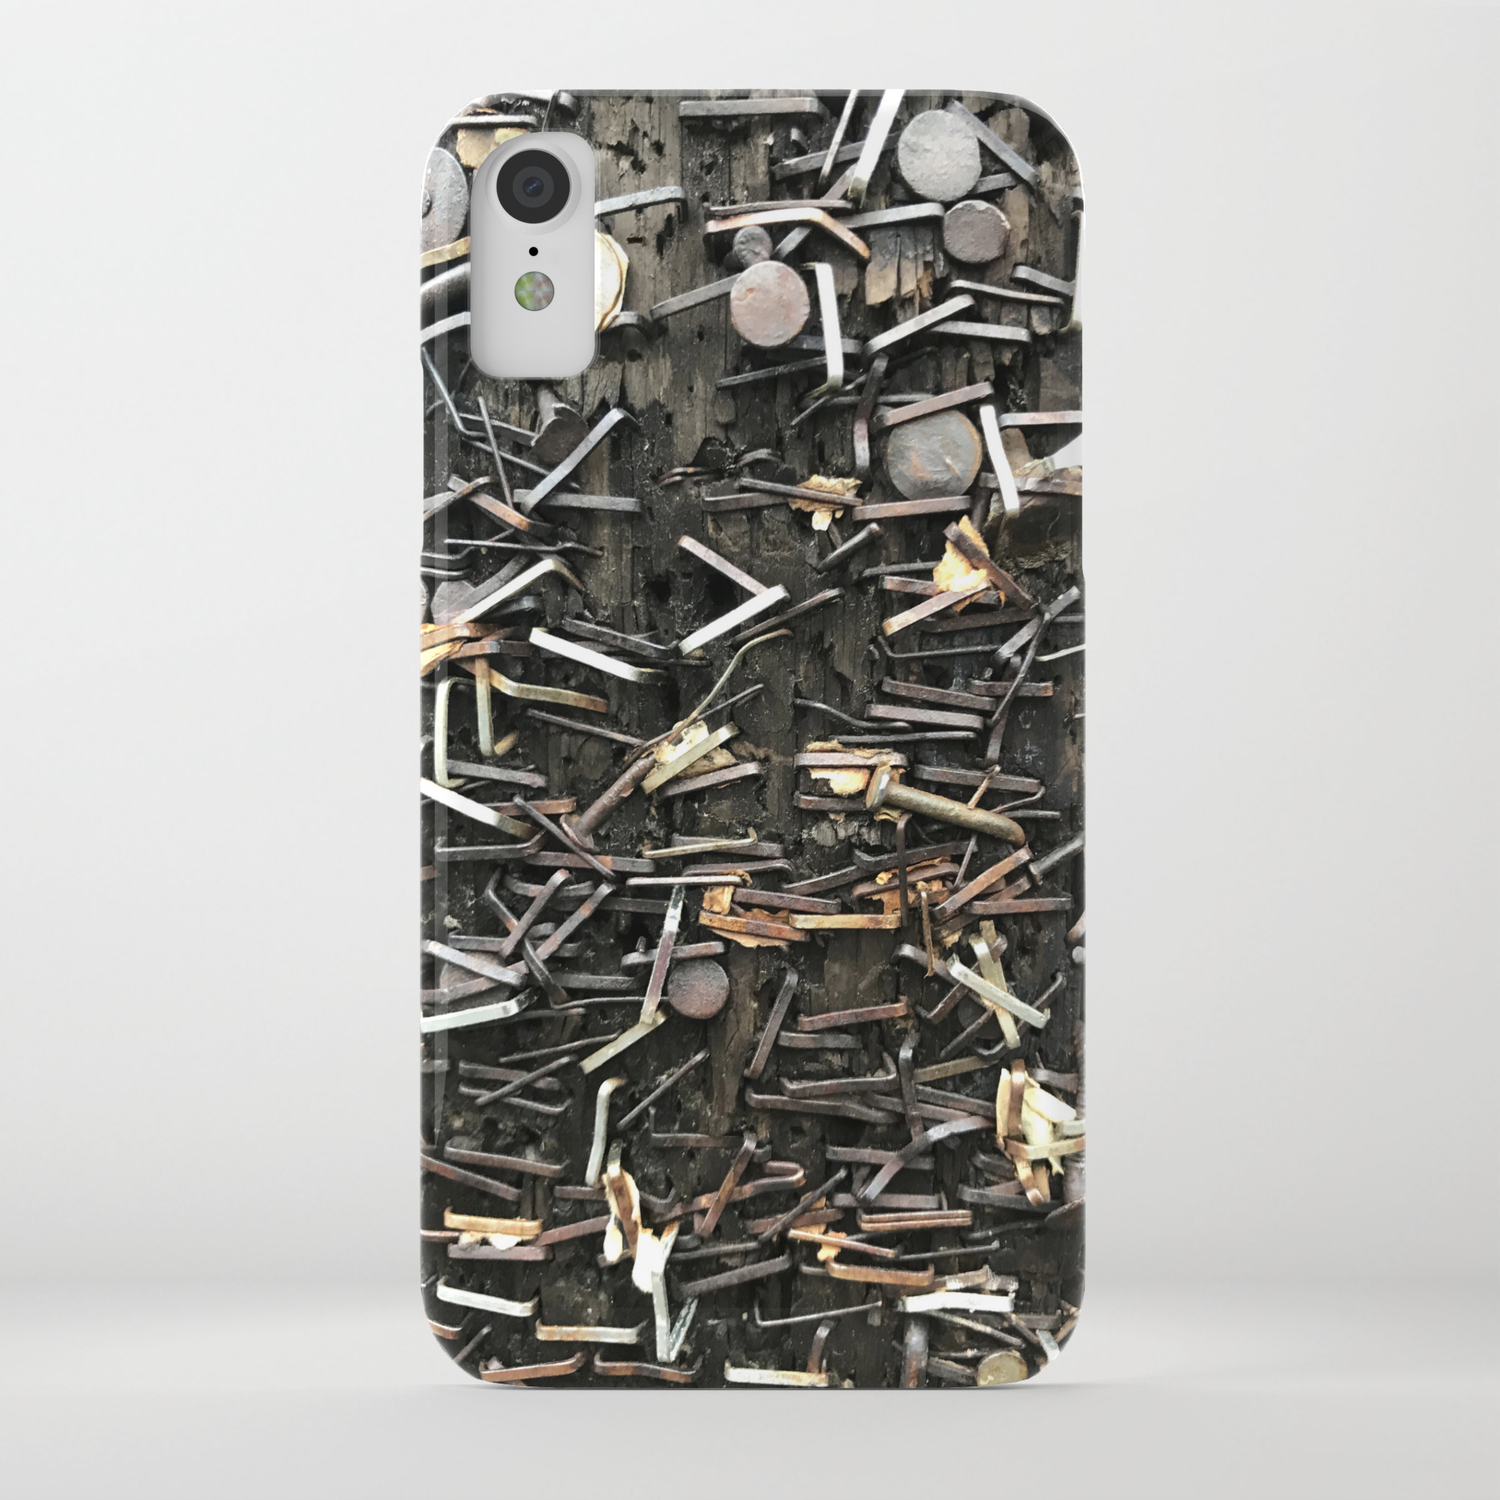 watch 62d7f 79a4e Staples and Nails it! iPhone Case